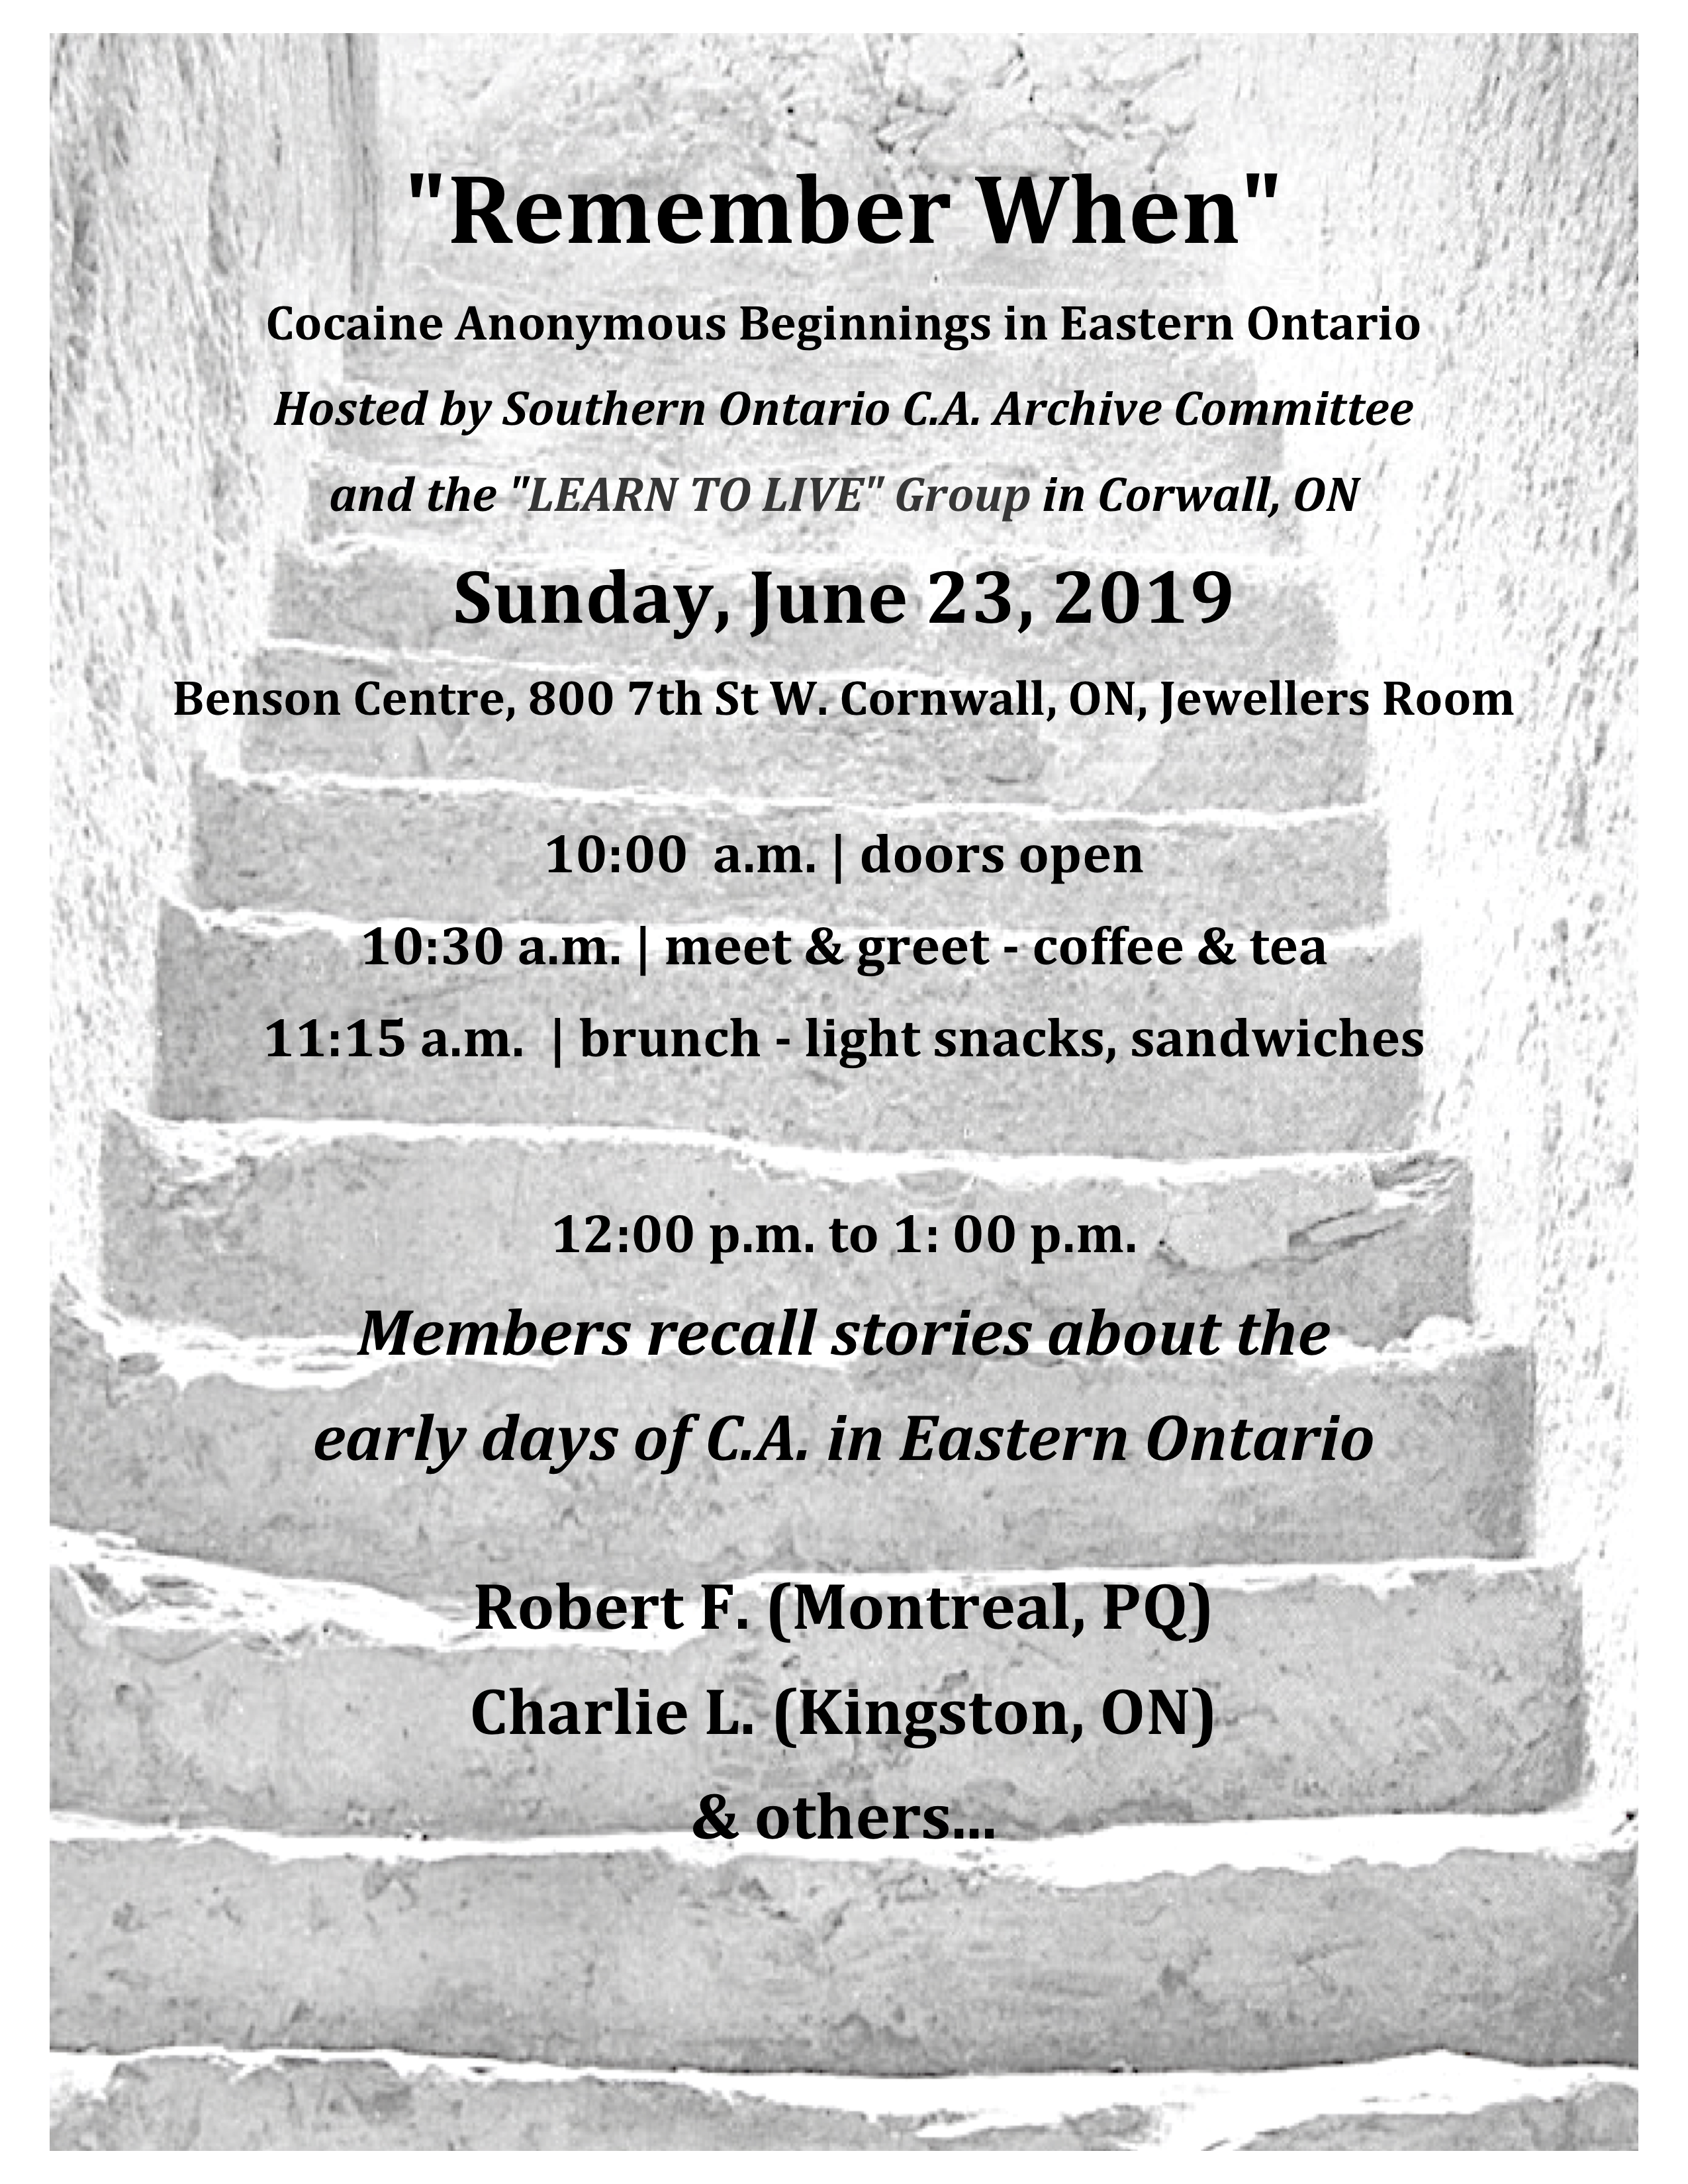 cocaine anonymous, cornwall, ontario archives